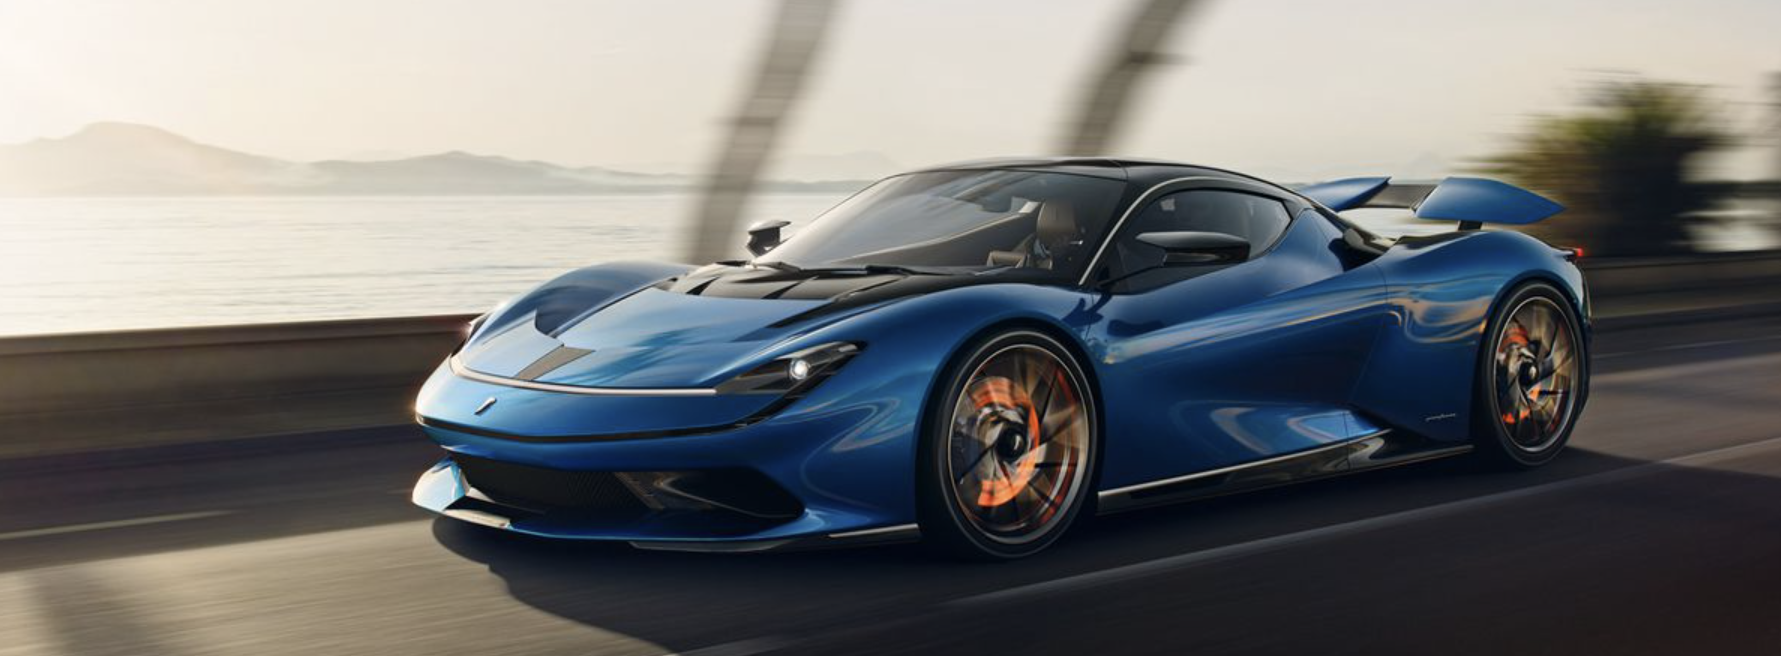 With the 2020 Supercars Championship coming up, now is a better time than ever to take a look at the all new supercars of the upcoming future.